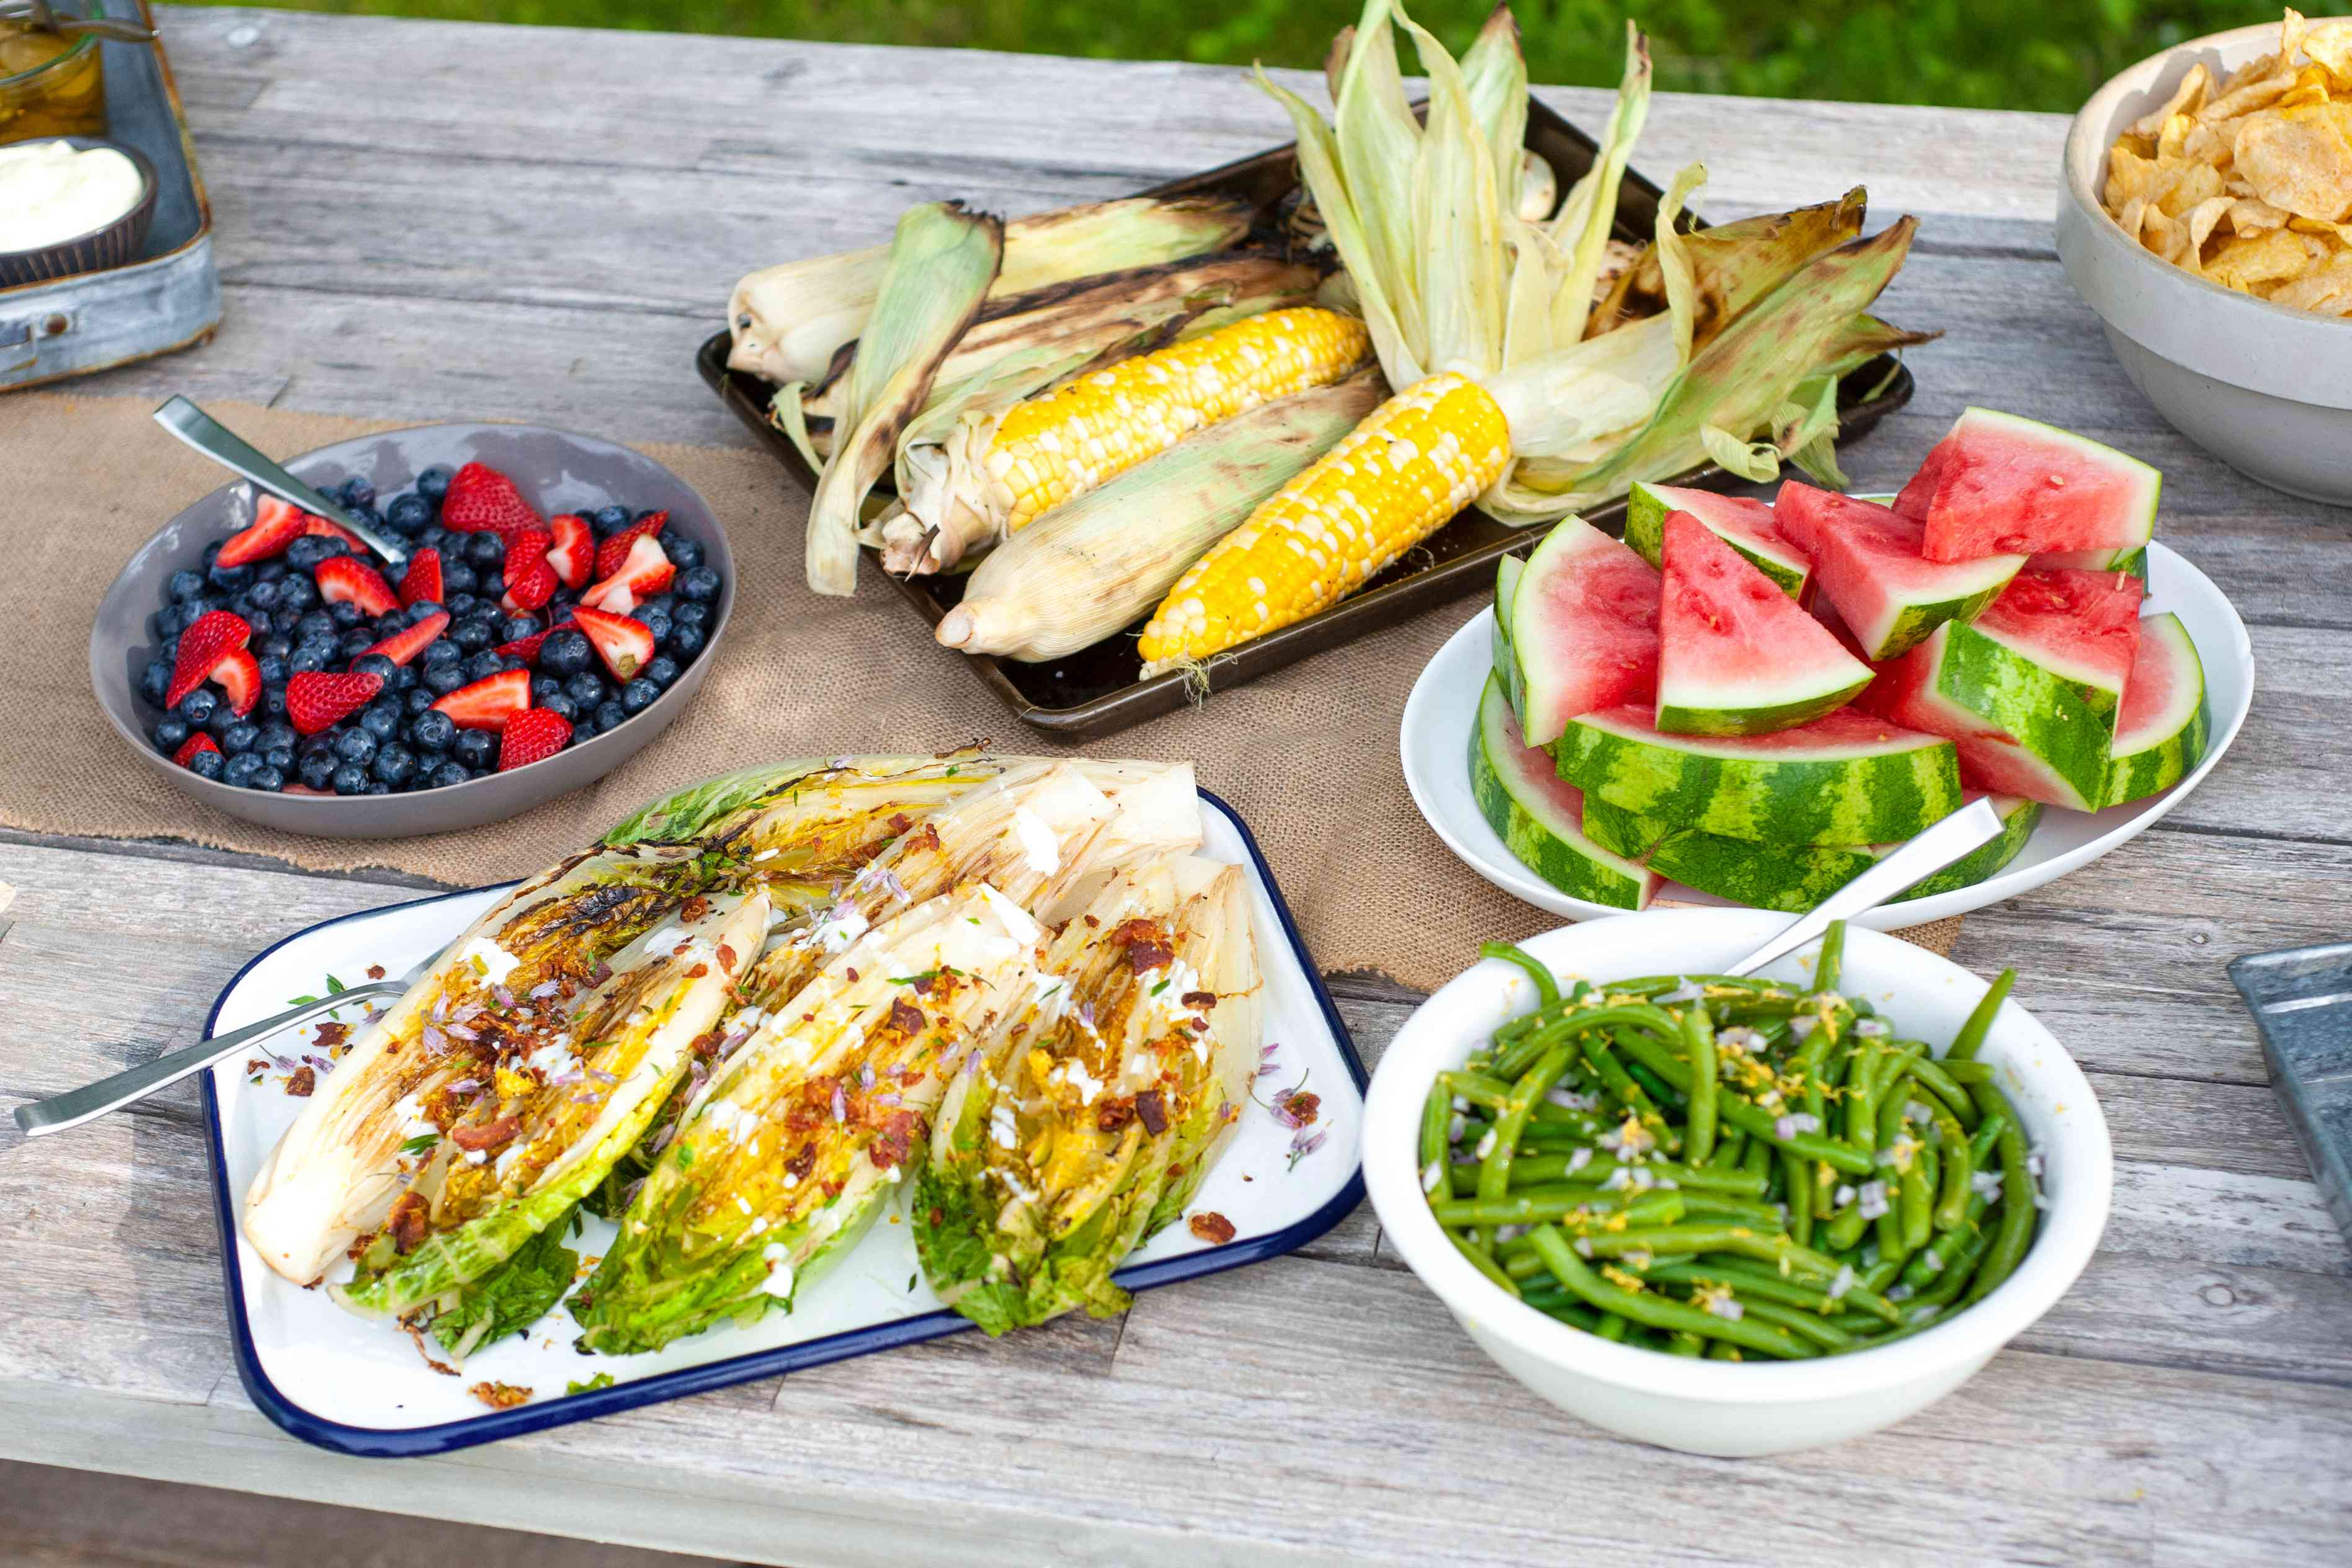 Picnic table full of grilled lettuce, corn, berries, watermelon and green beans.